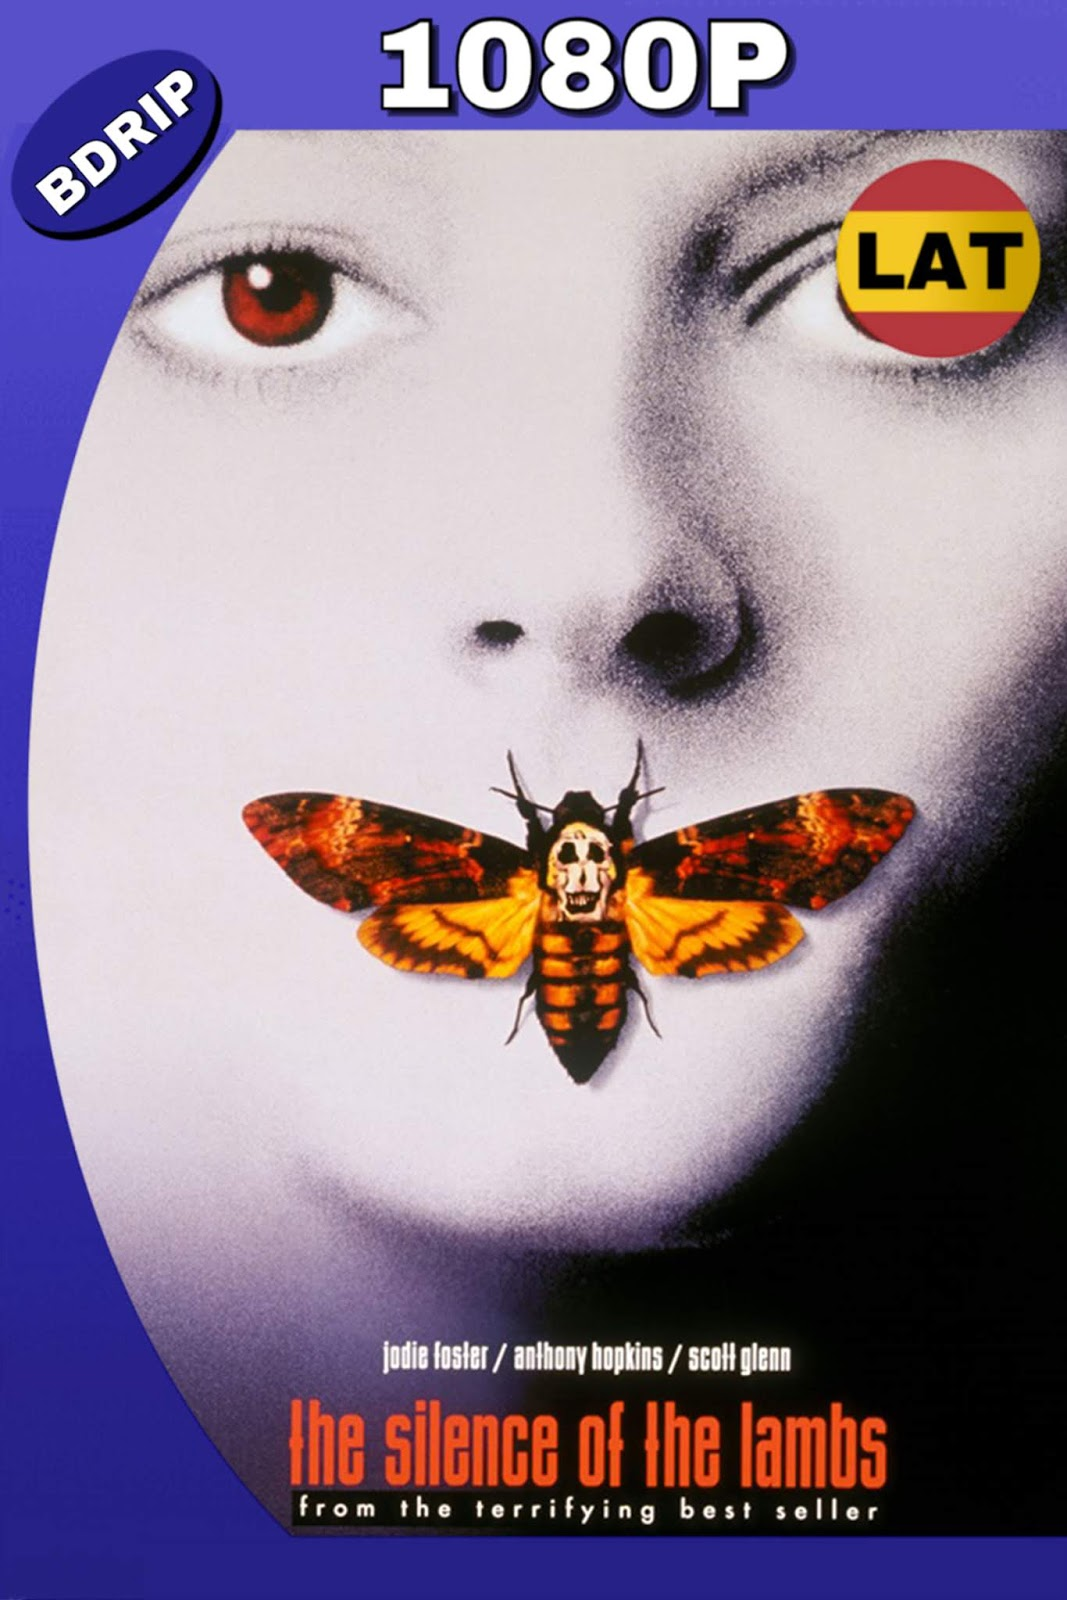 THE SILENCE OF THE LAMBS 1991 REMASTERED LAT-ING HD BDRIP 1080P 12 GB.mkv